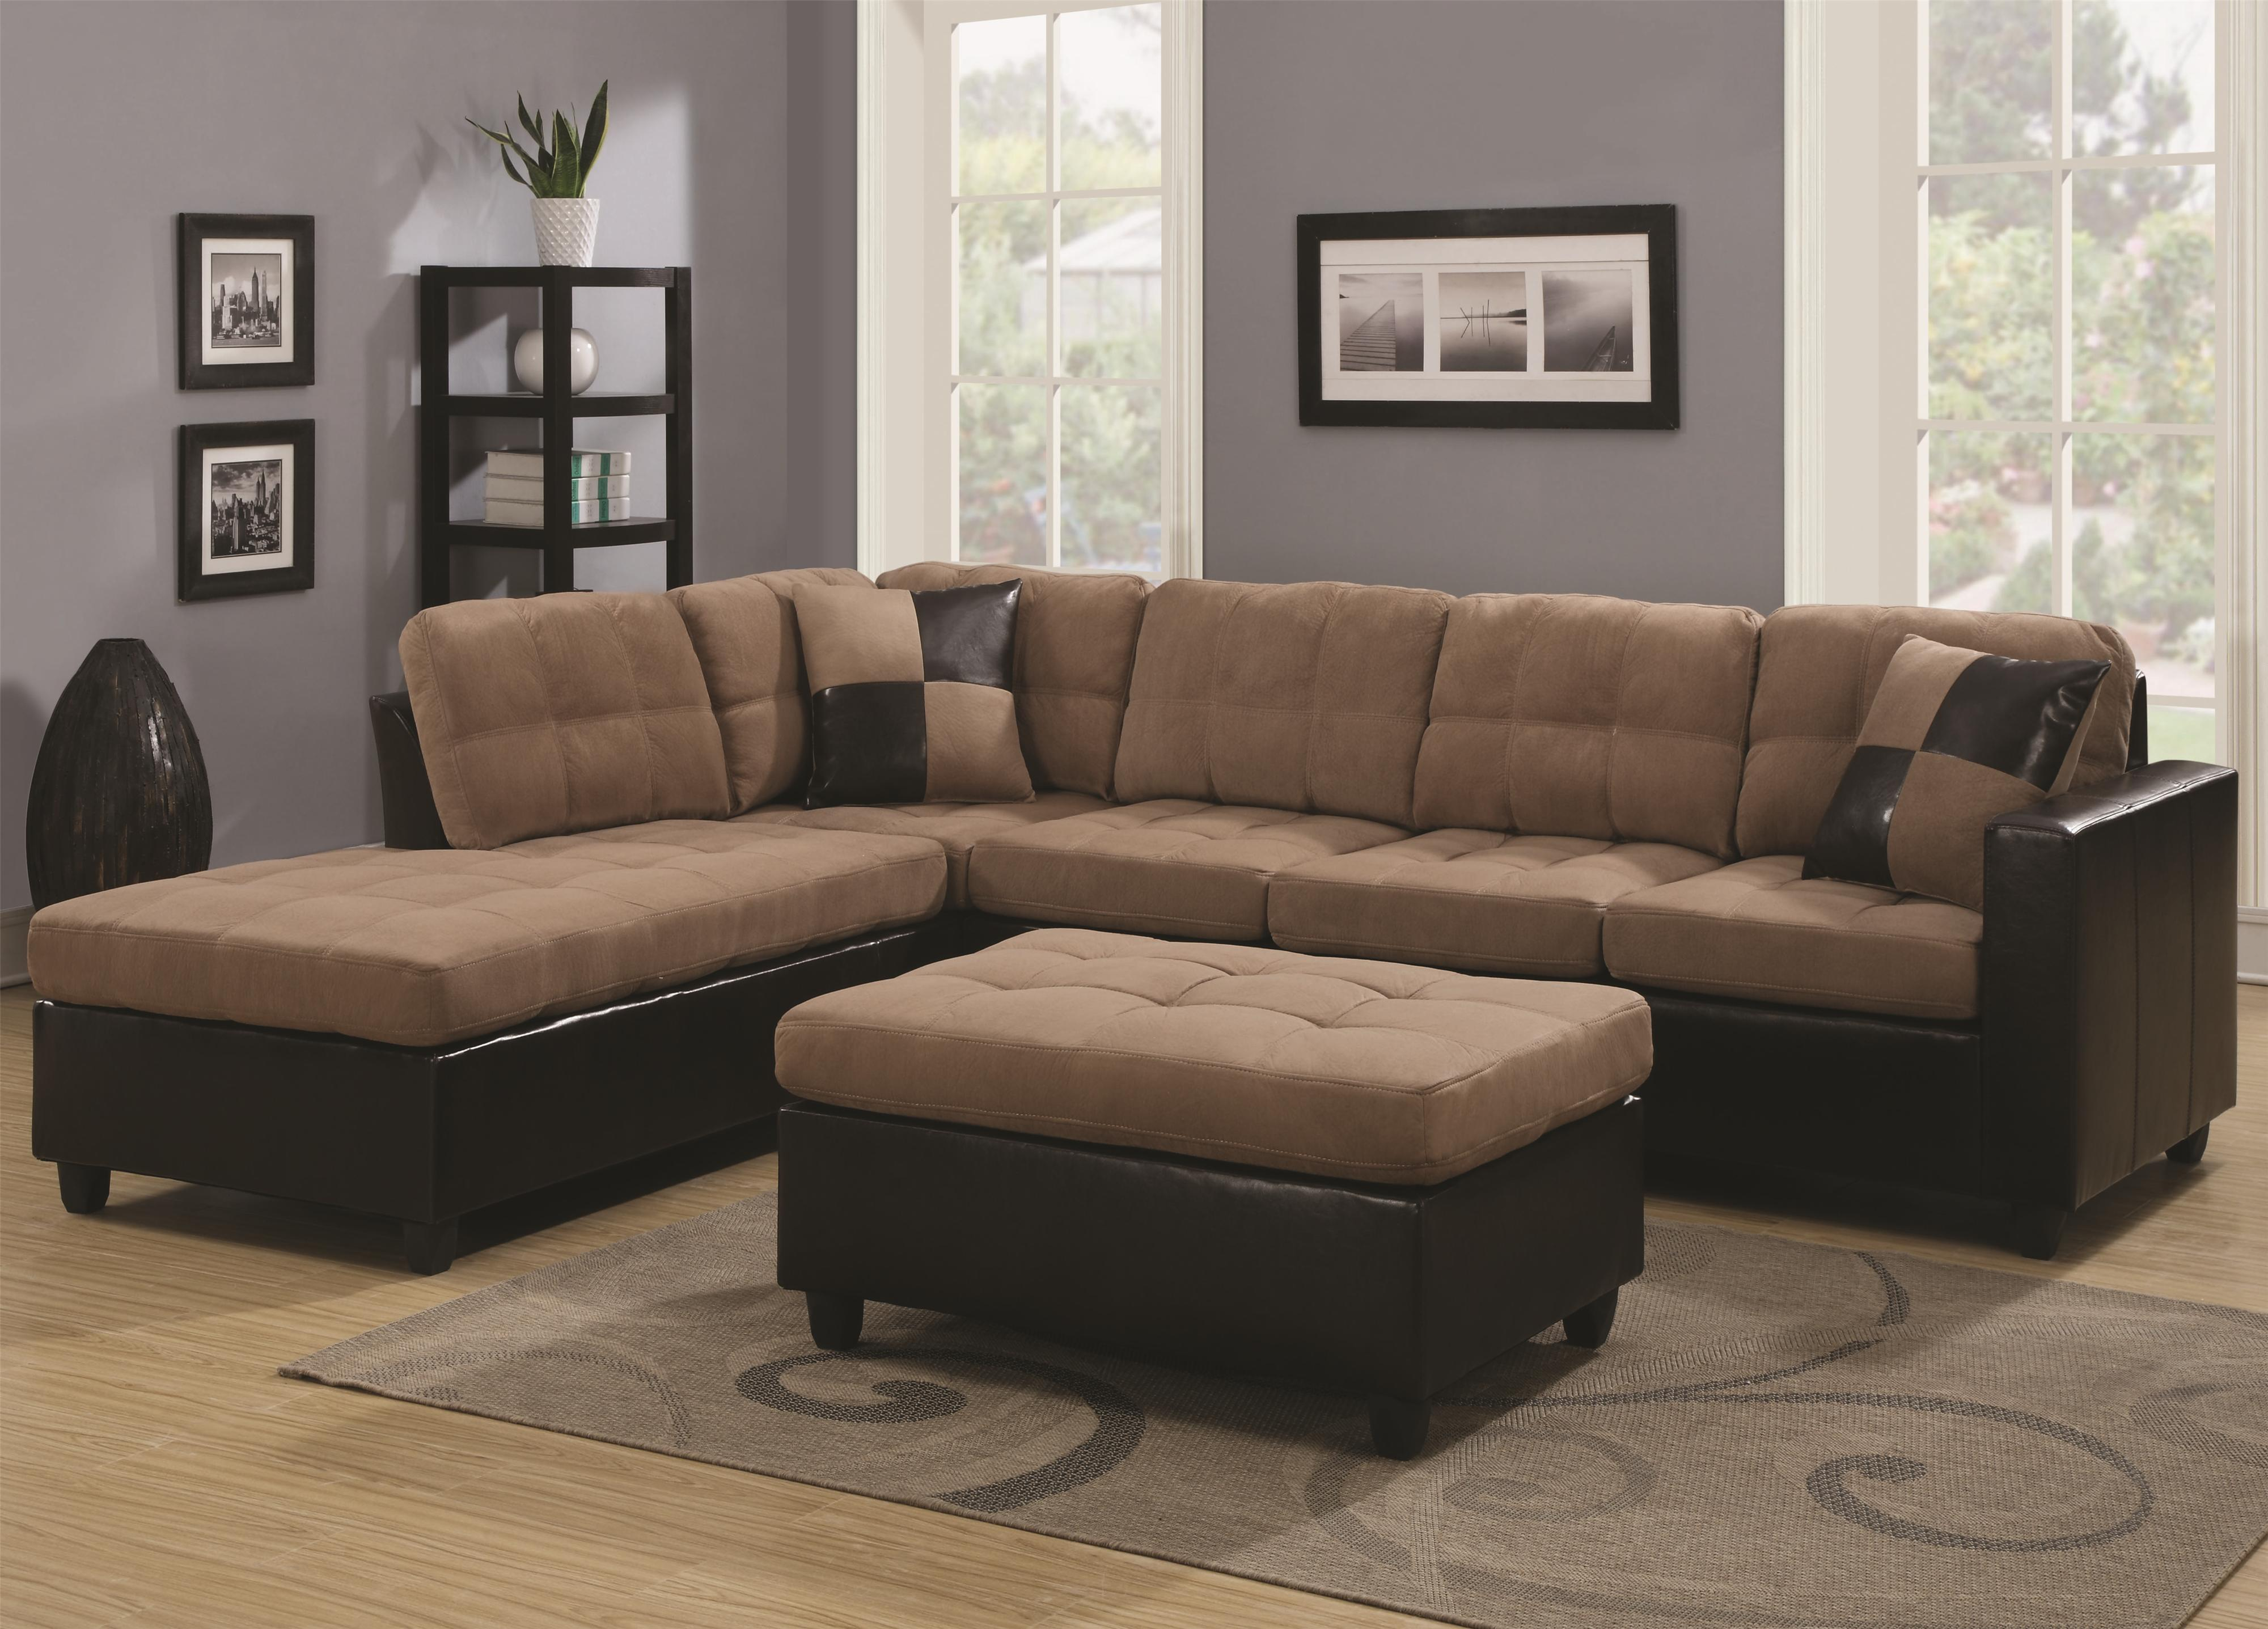 Coaster Mallory Sectional - Item Number: 505675